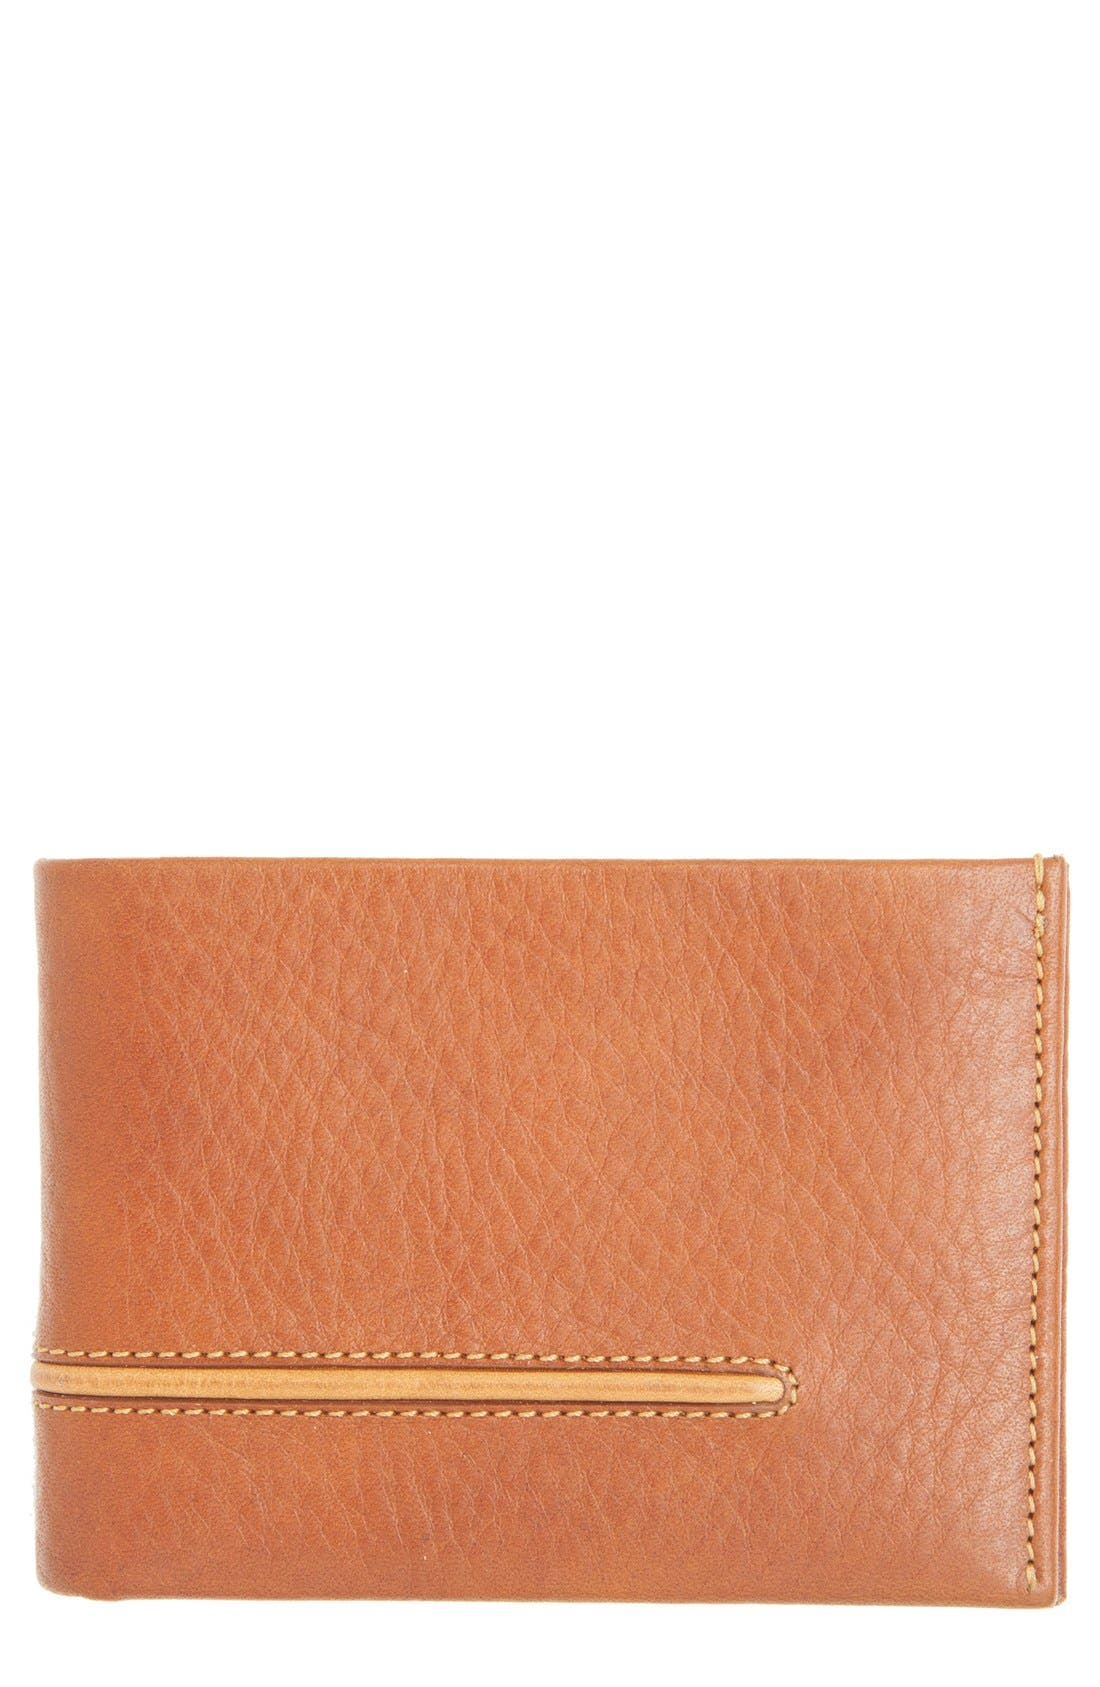 Leather L-Fold Wallet,                         Main,                         color,